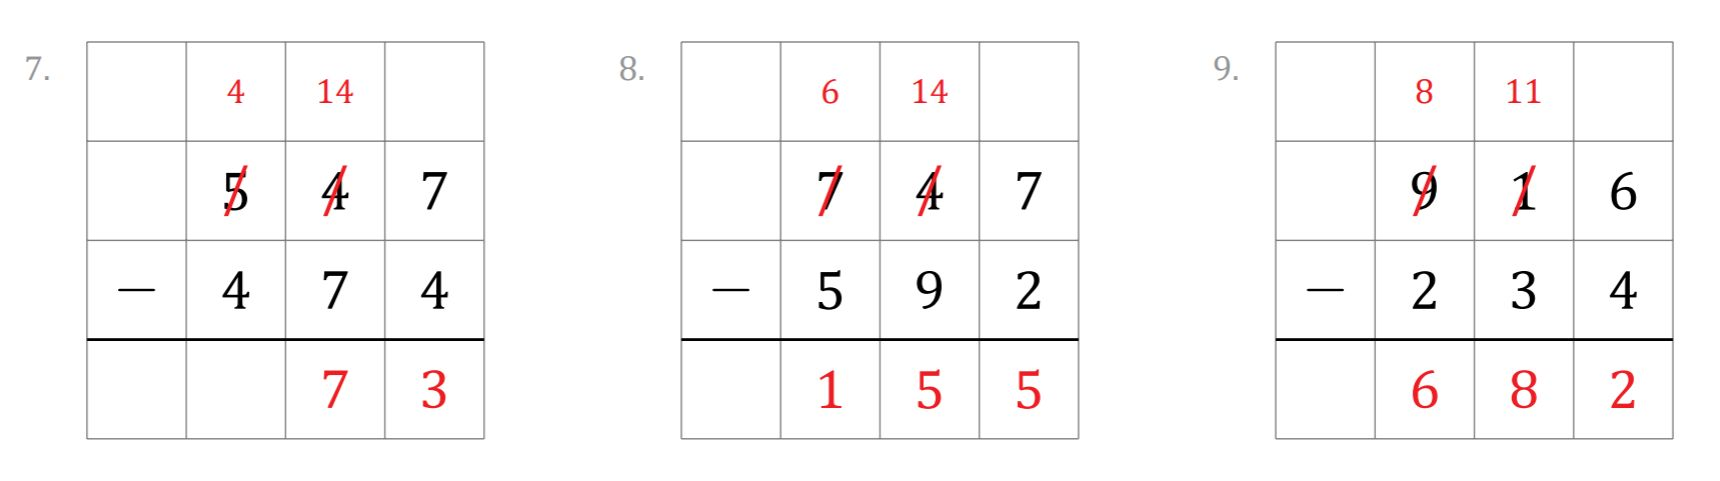 Grid subtraction example questions